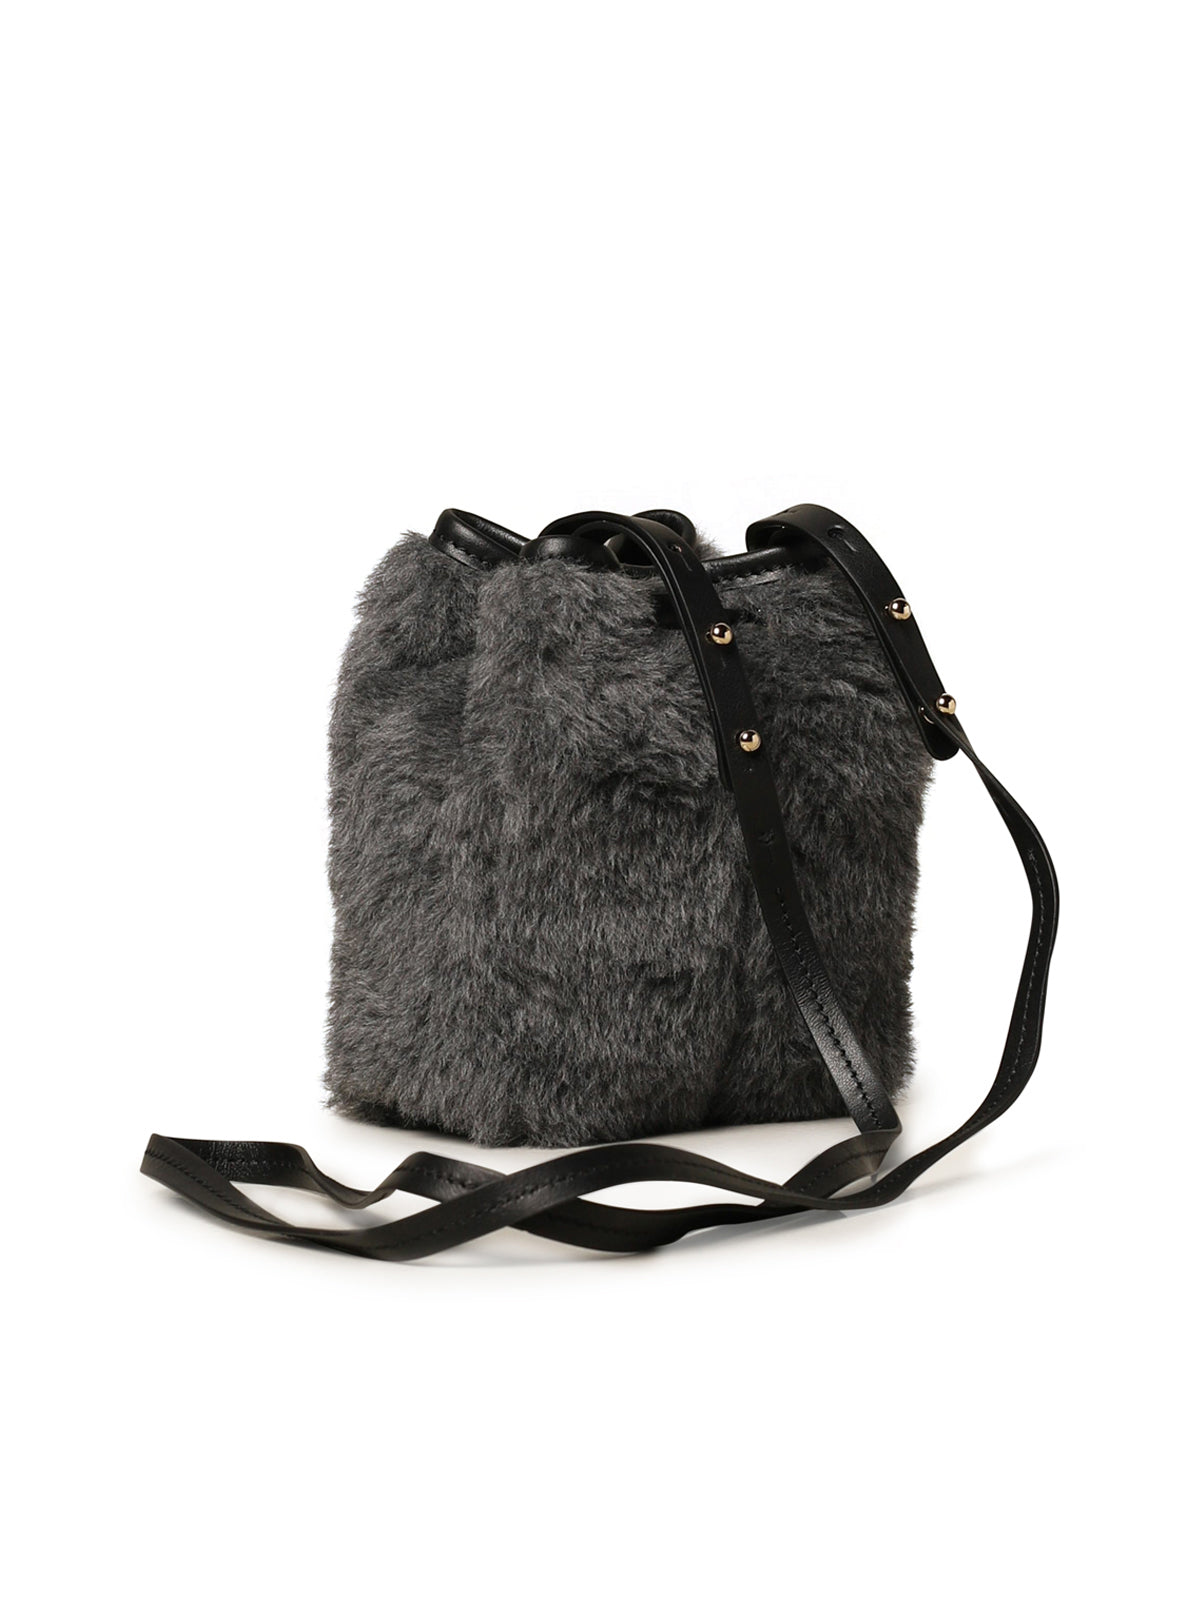 Max Mara teddy bucket bag in fur and leather